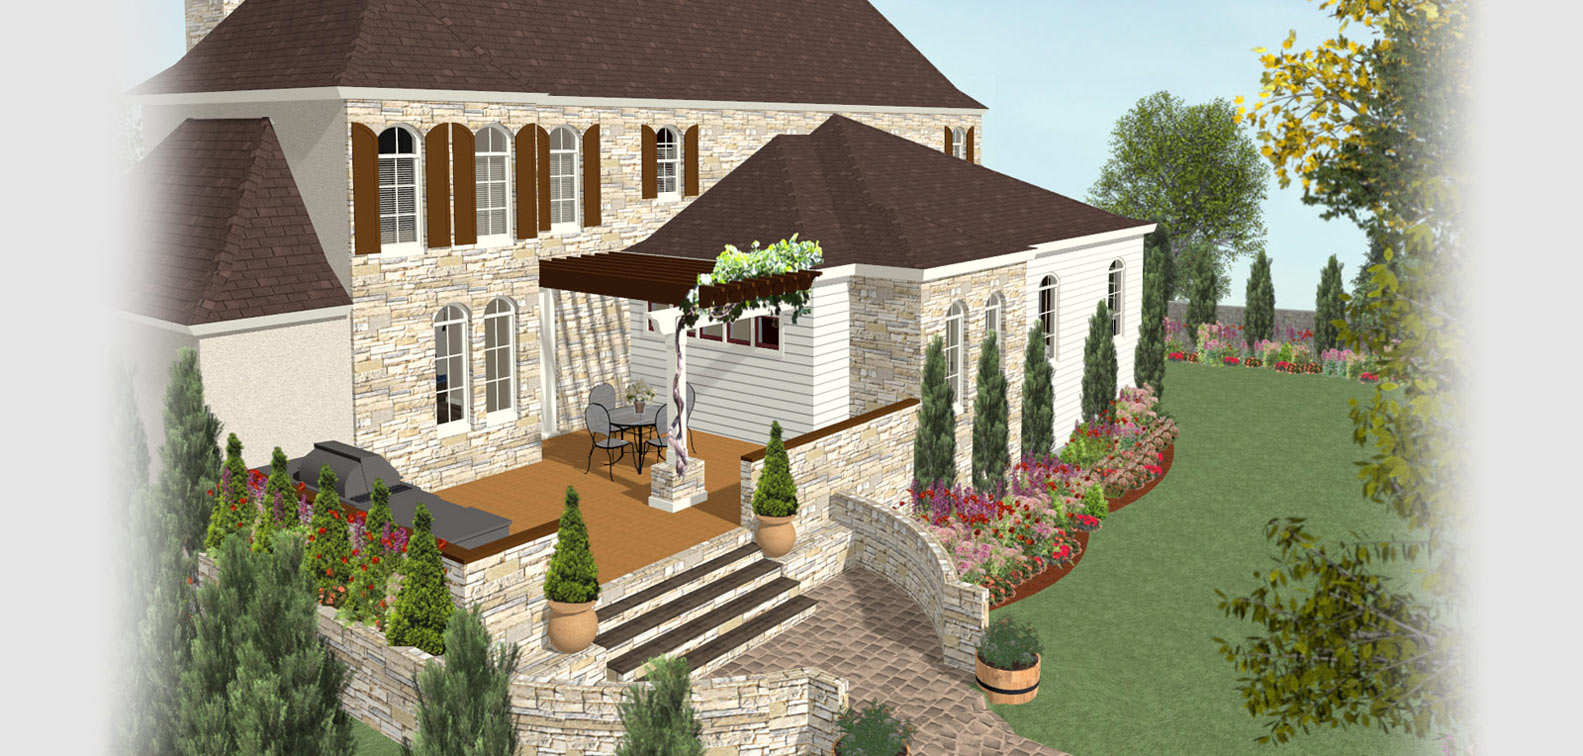 Deck and landscape software home designer - Best home and landscape design software ...